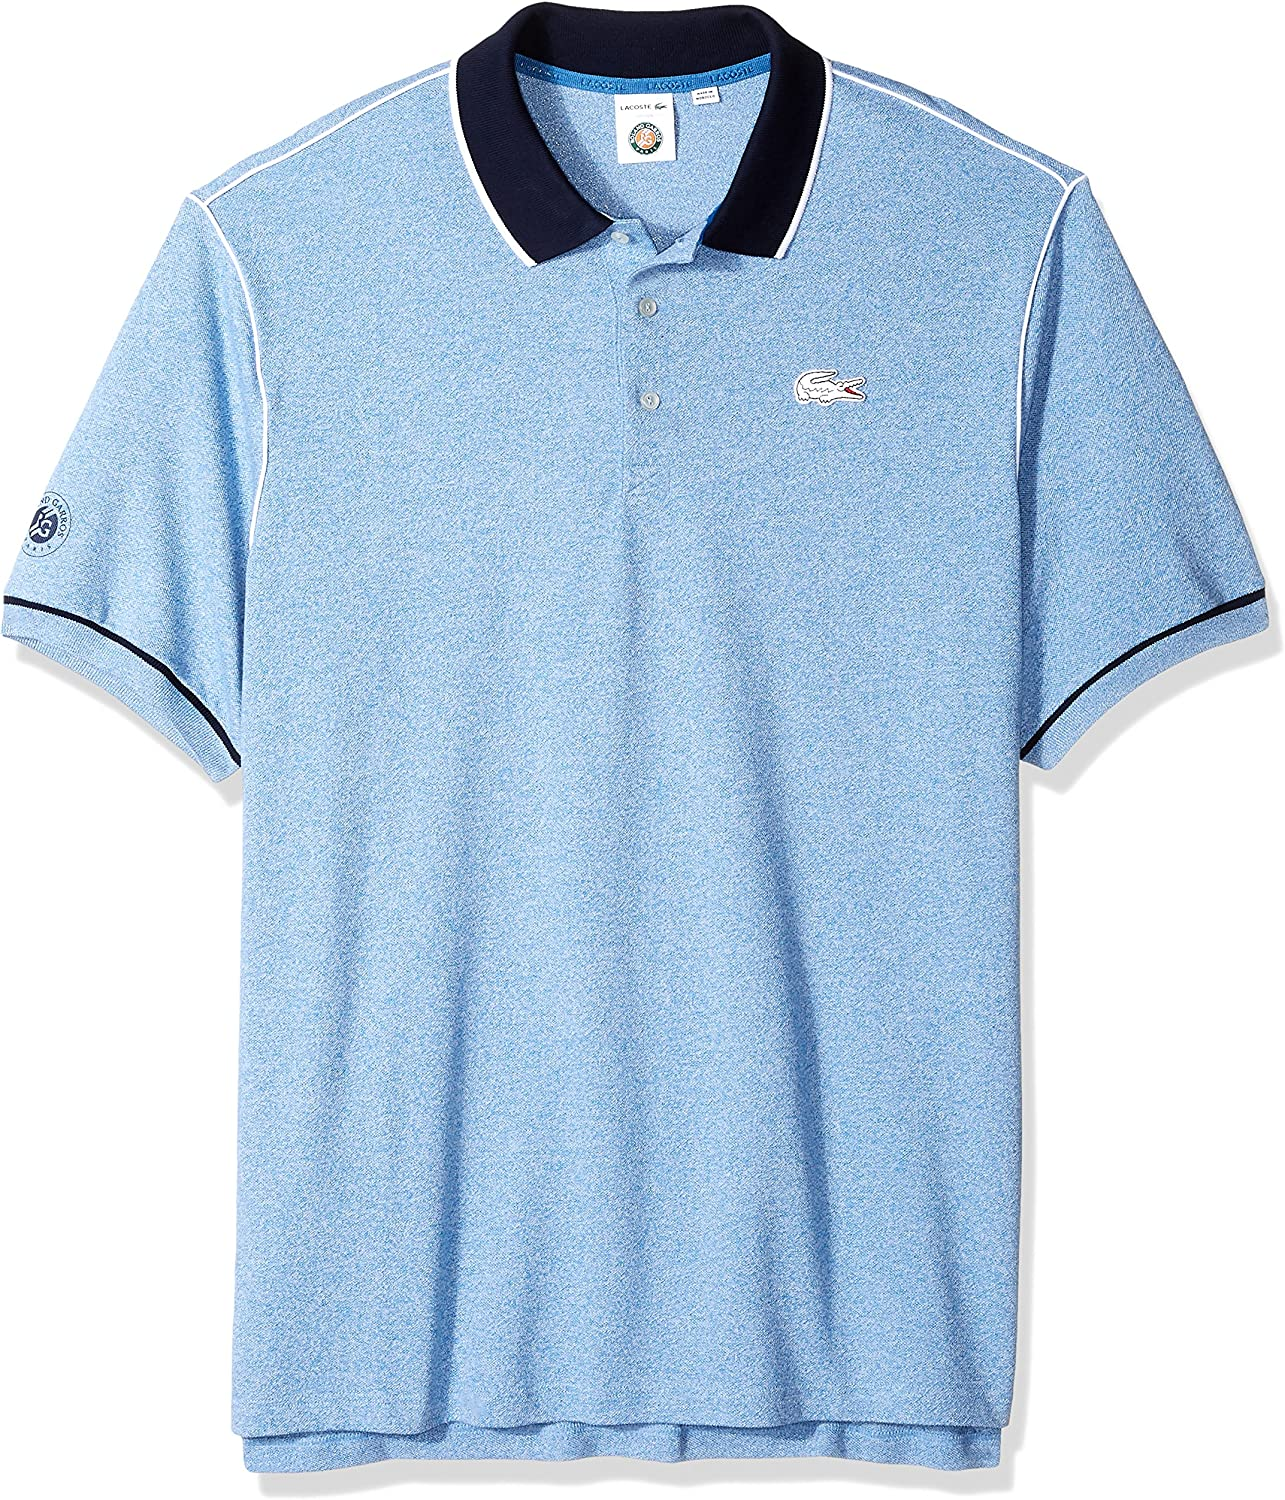 PH3374 Lacoste Mens Short Sleeve Pique with Contrast Piping /& Collar Polo